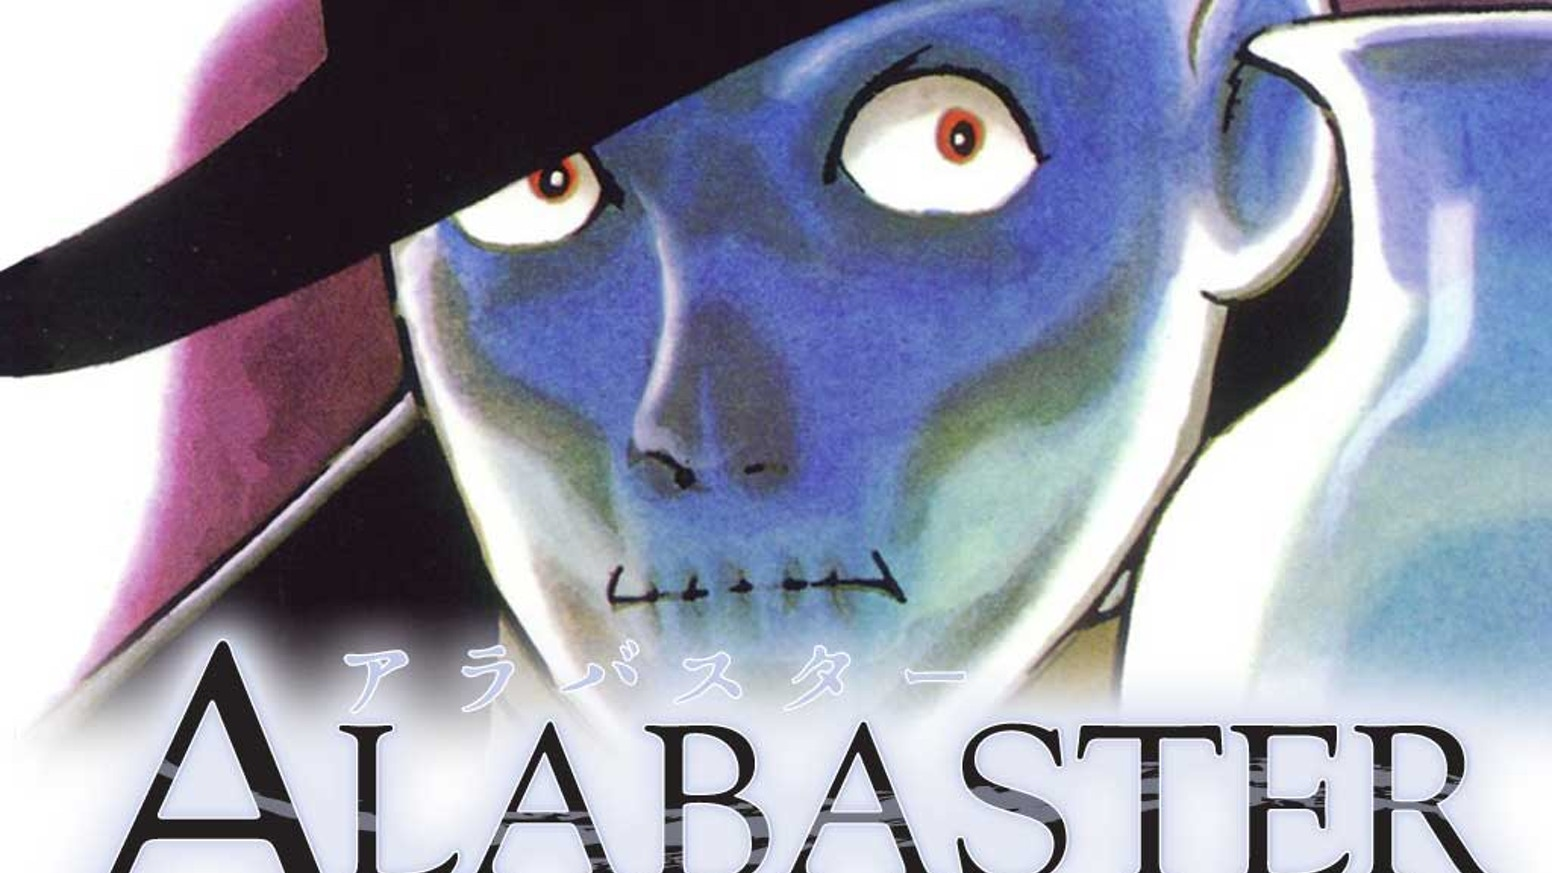 We want to localize and publish Osamu Tezuka's 2-volume series Alabaster in English.